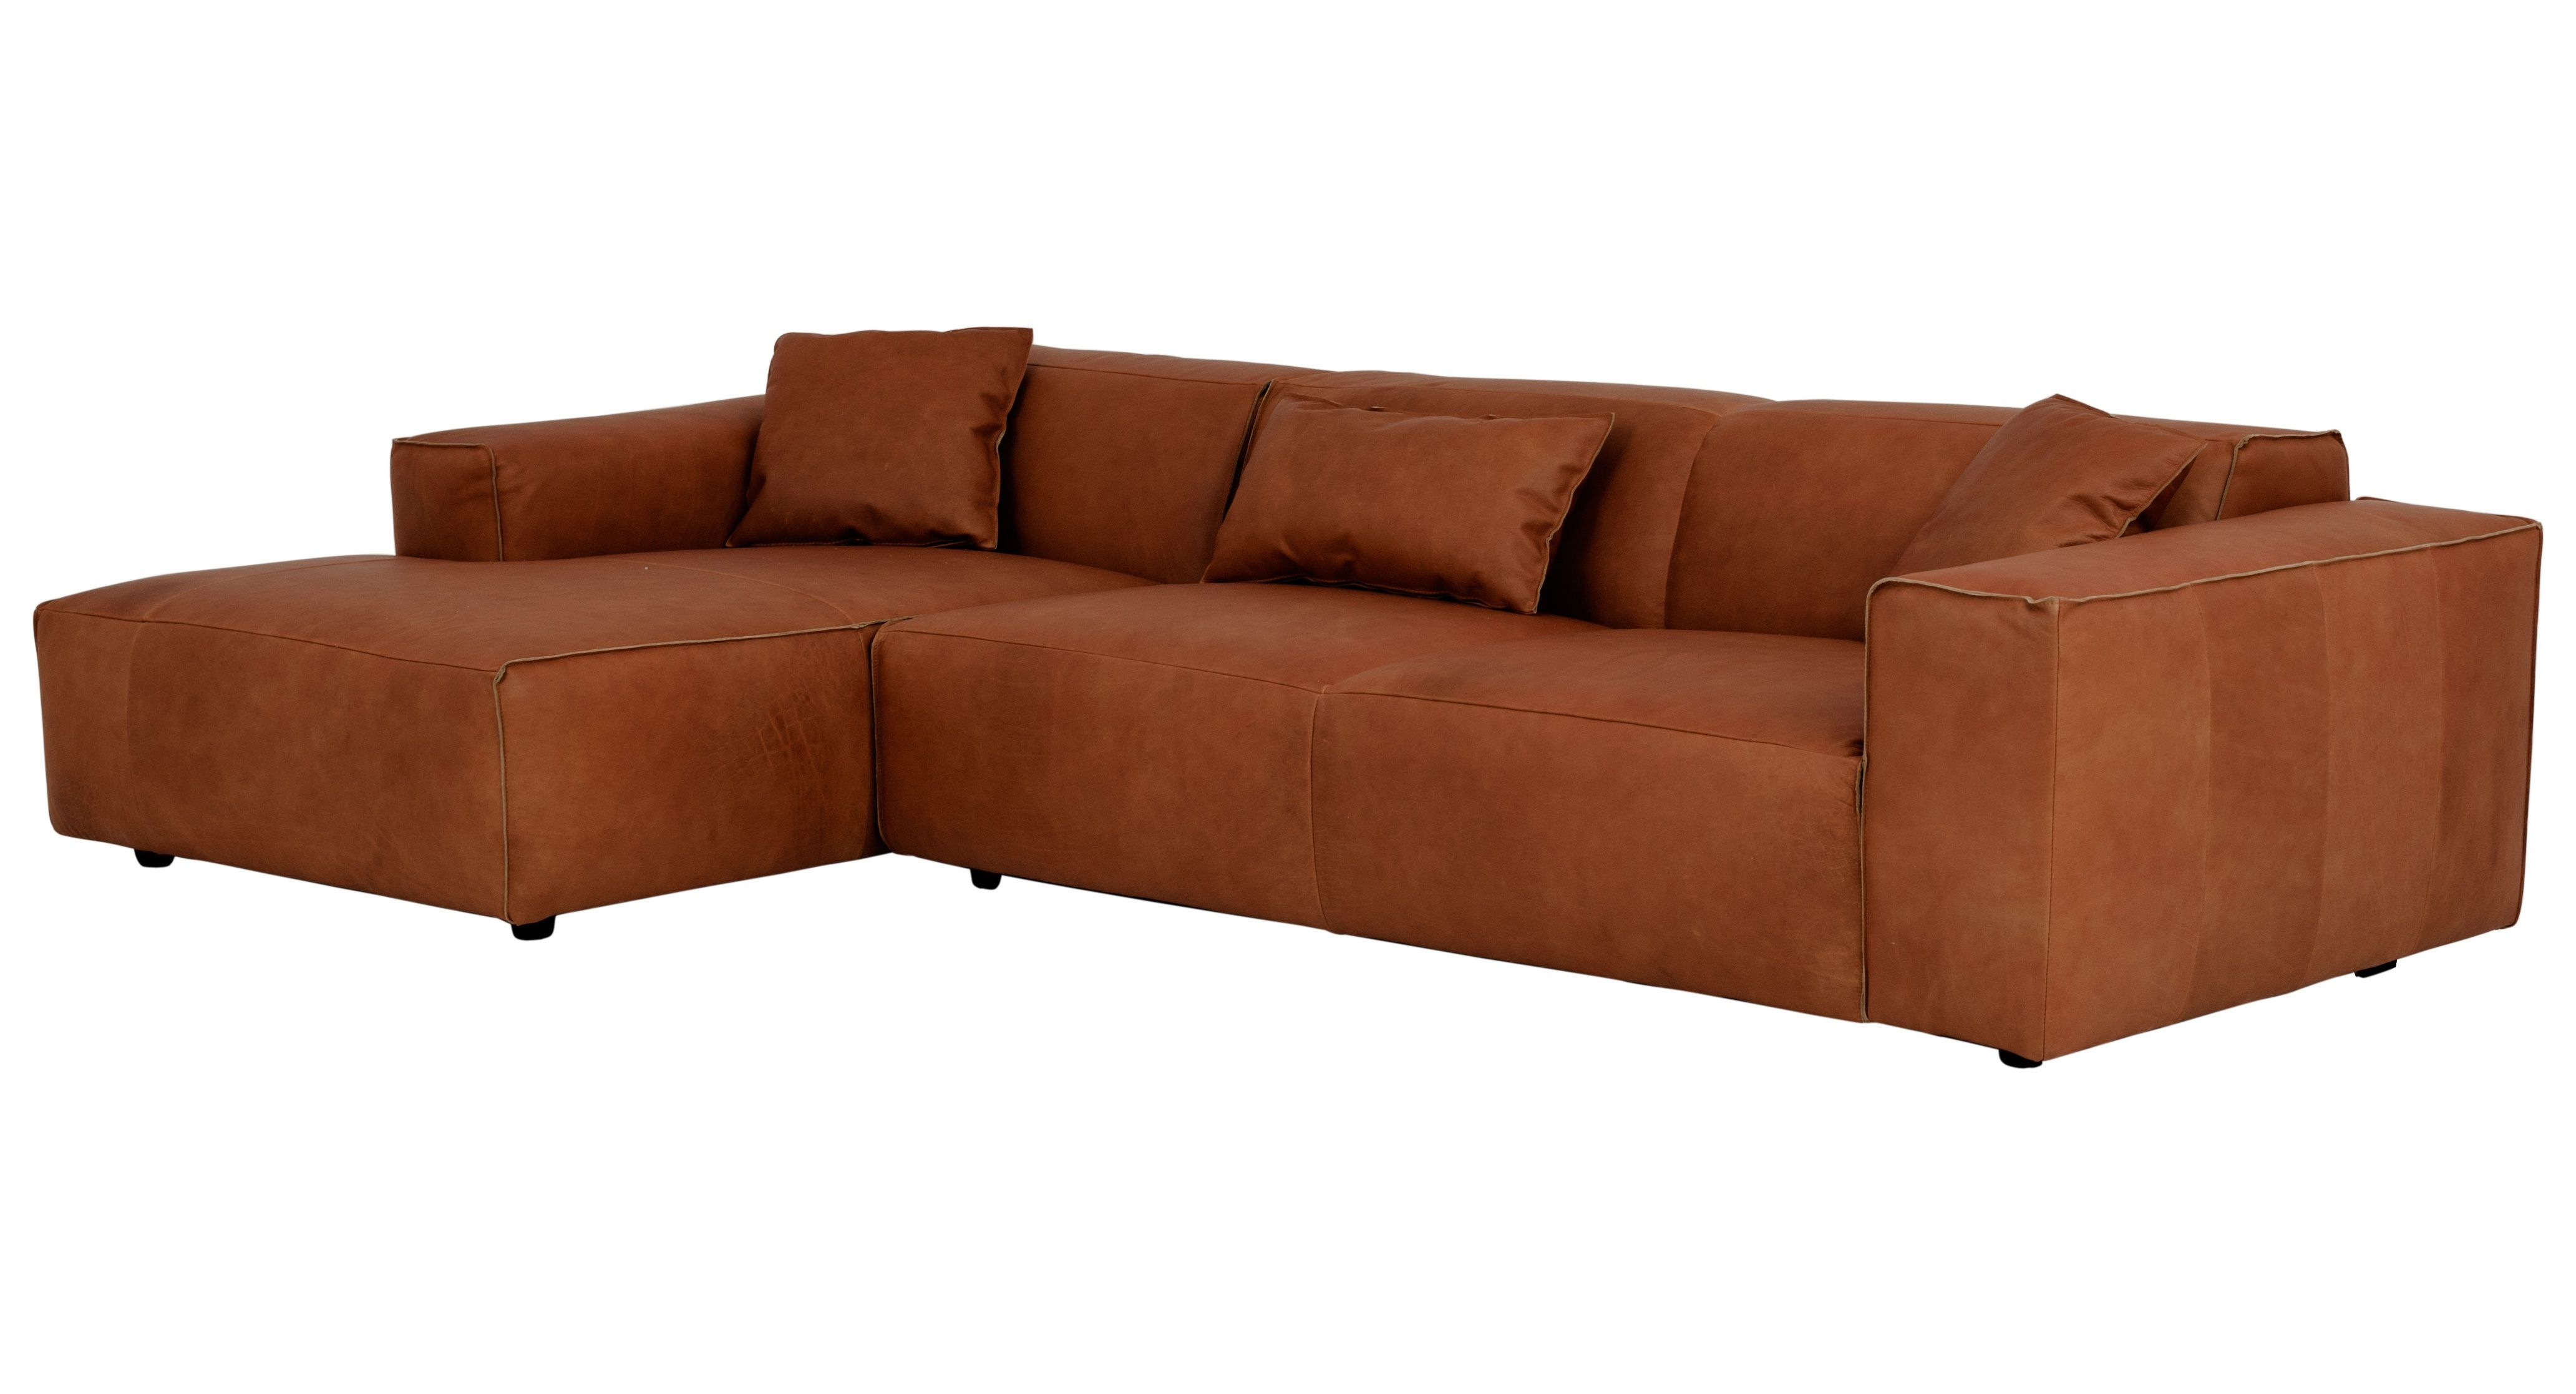 Cognac farbenes Ledersofa For the Home